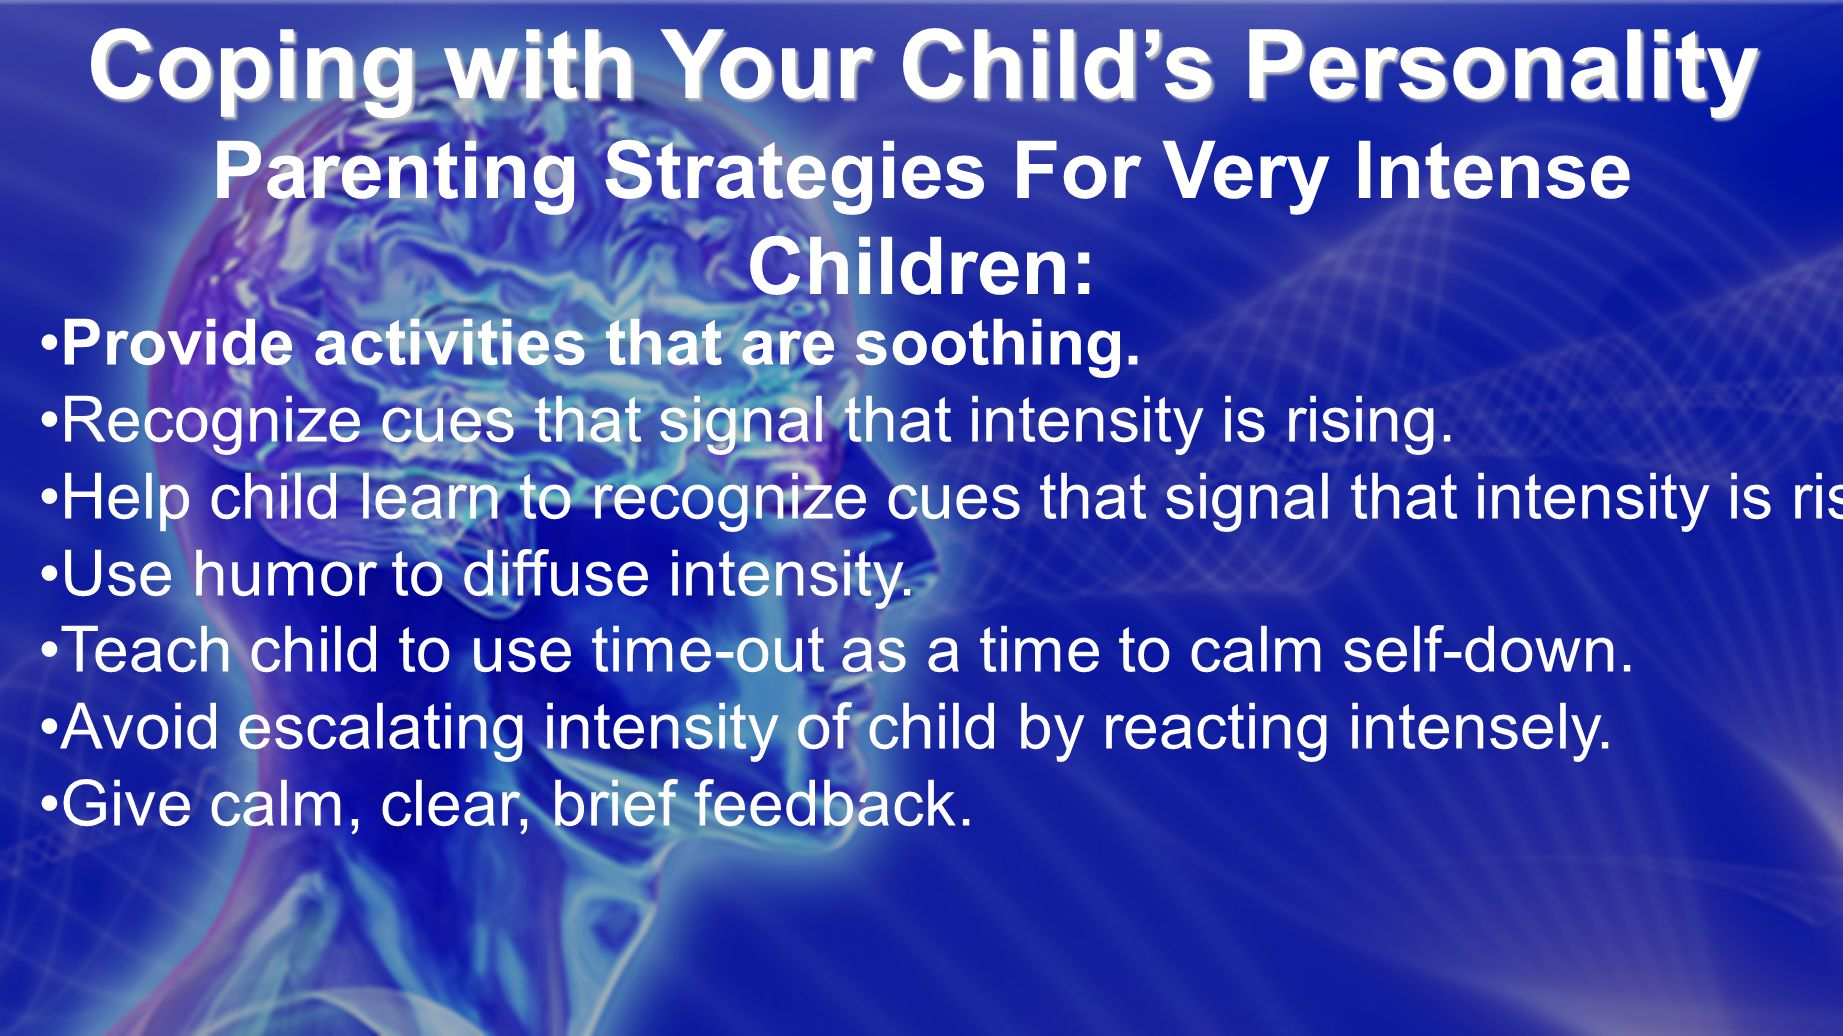 Coping with Your Child's Personality Coping with Your Child's Personality Parenting Strategies For Very Intense Children: Provide activities that are soothing.